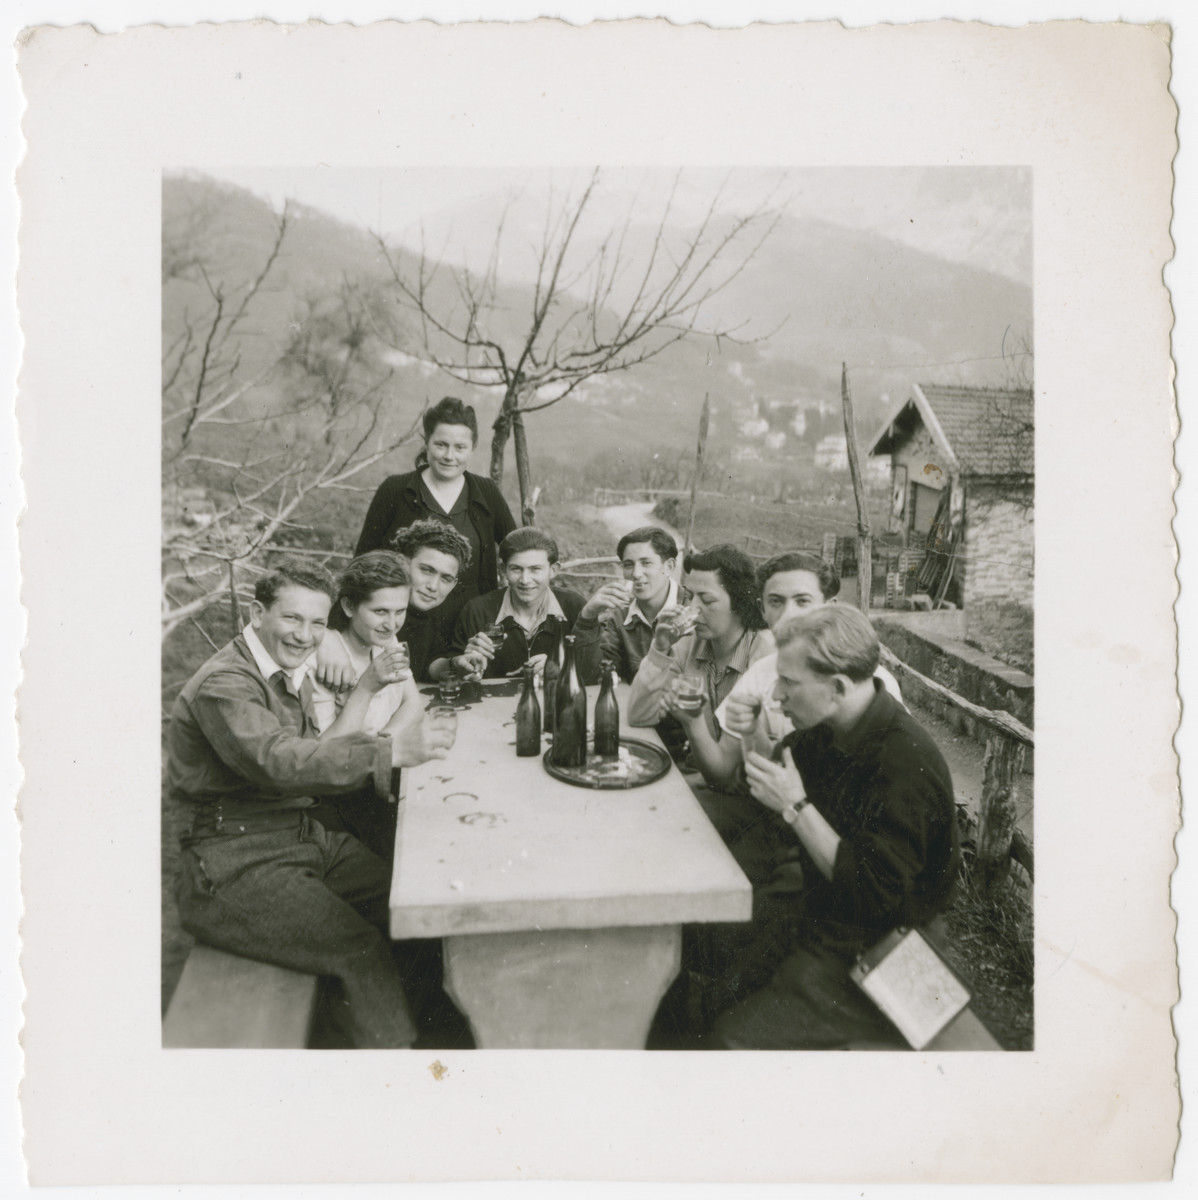 A group of young people enjoys a drink while on an excursion through the Swiss countryside.  Eva Weinberger is pictured seated at the table, second from the left.  Shlomo is next to her in front.  Berta Rubinstzajn is third in on the right sipping water.